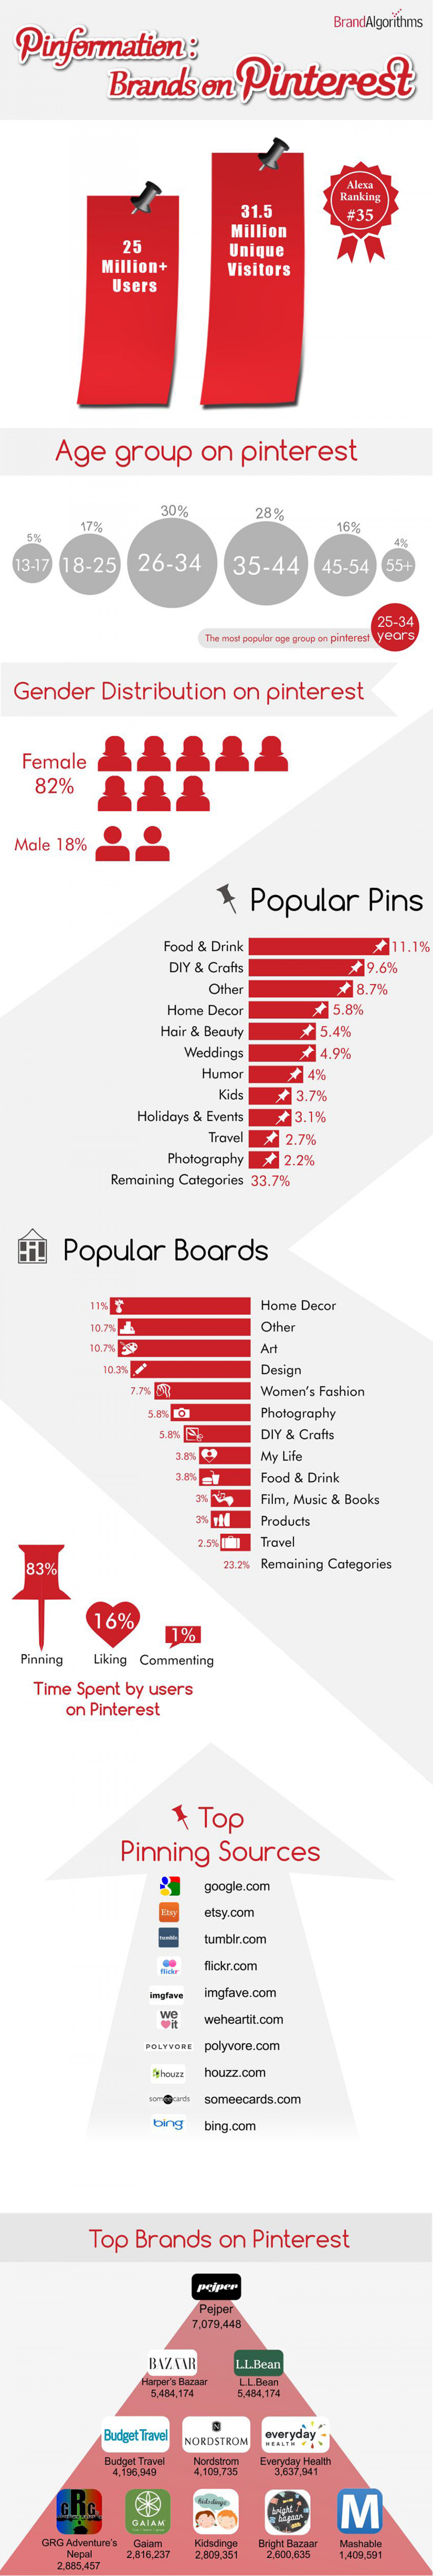 Pinformation: Brands on Pinterest Infographic